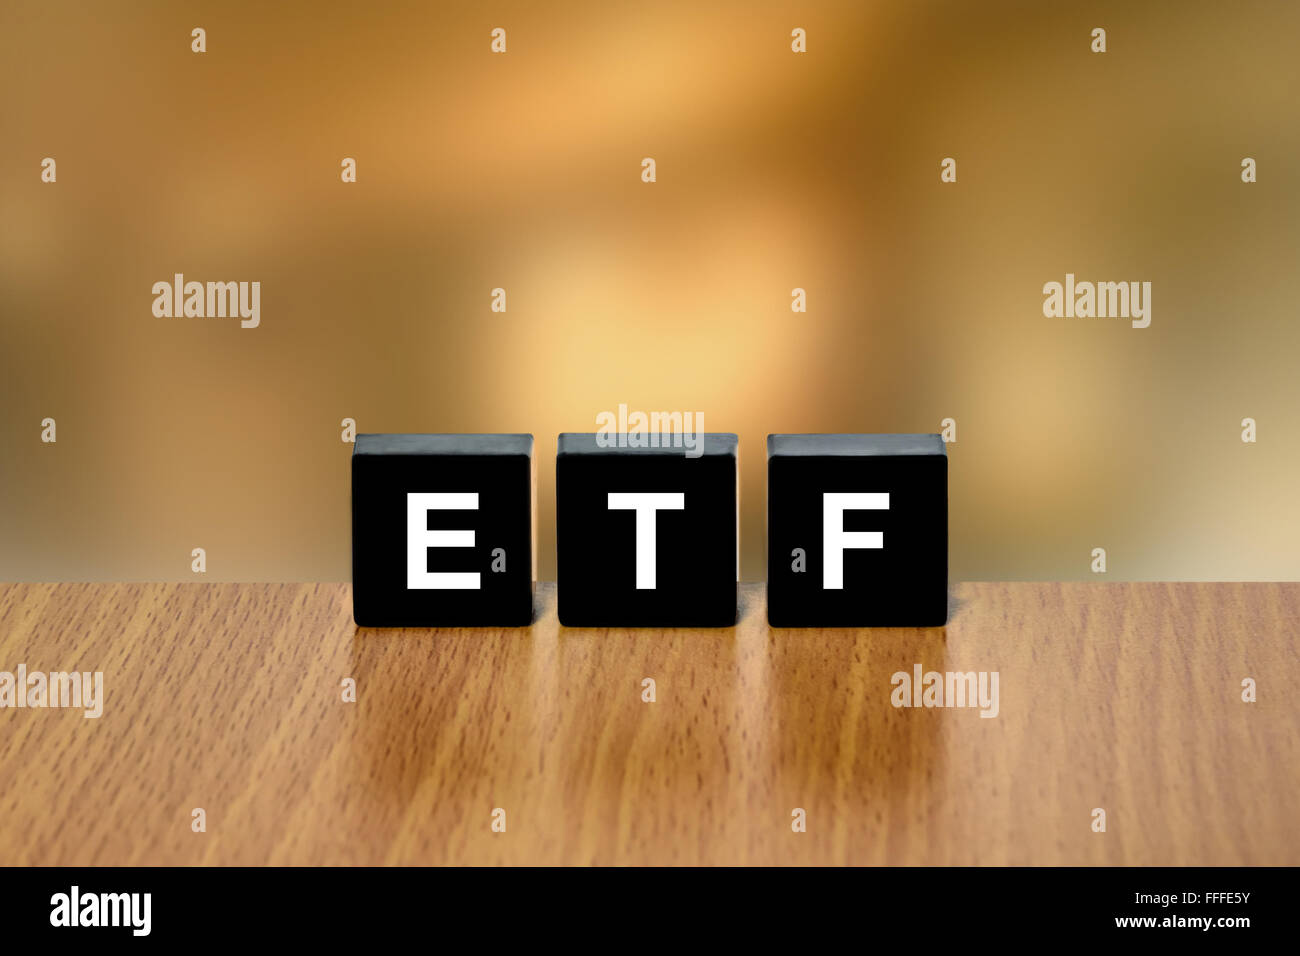 ETF or exchange traded fund on black block with blurred background Stock Photo